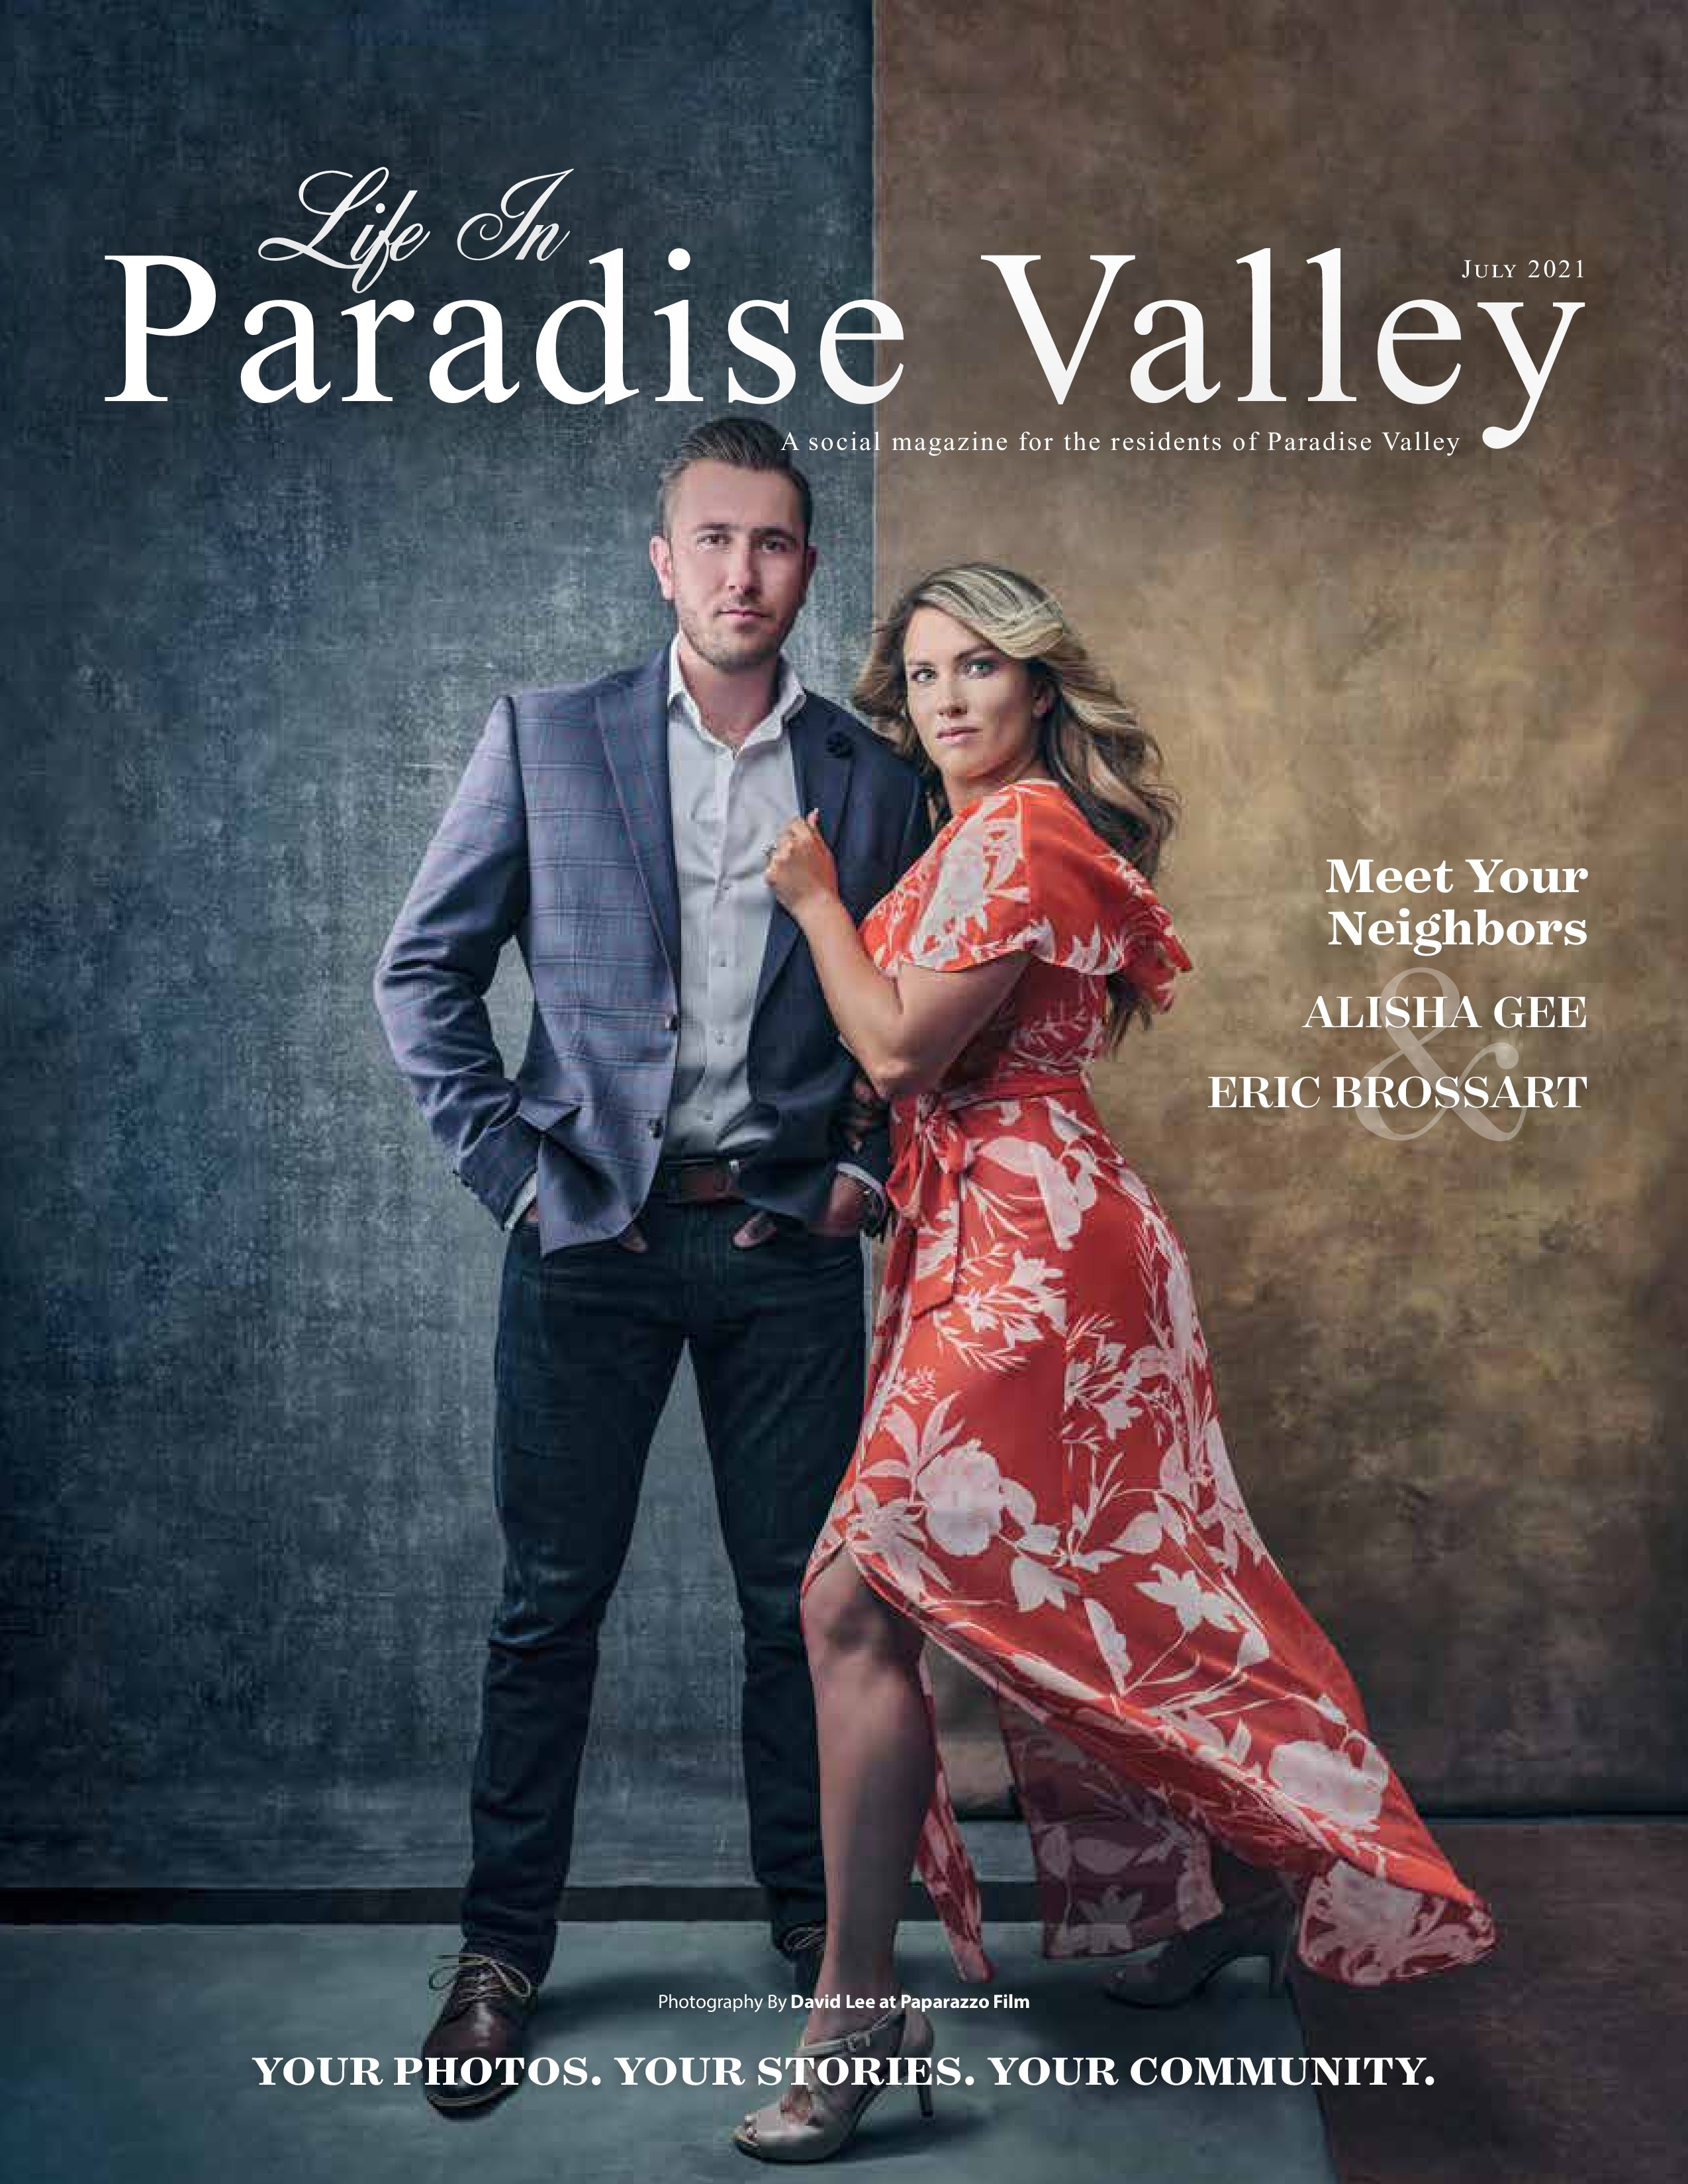 Life in Paradise Valley 2021-07-01